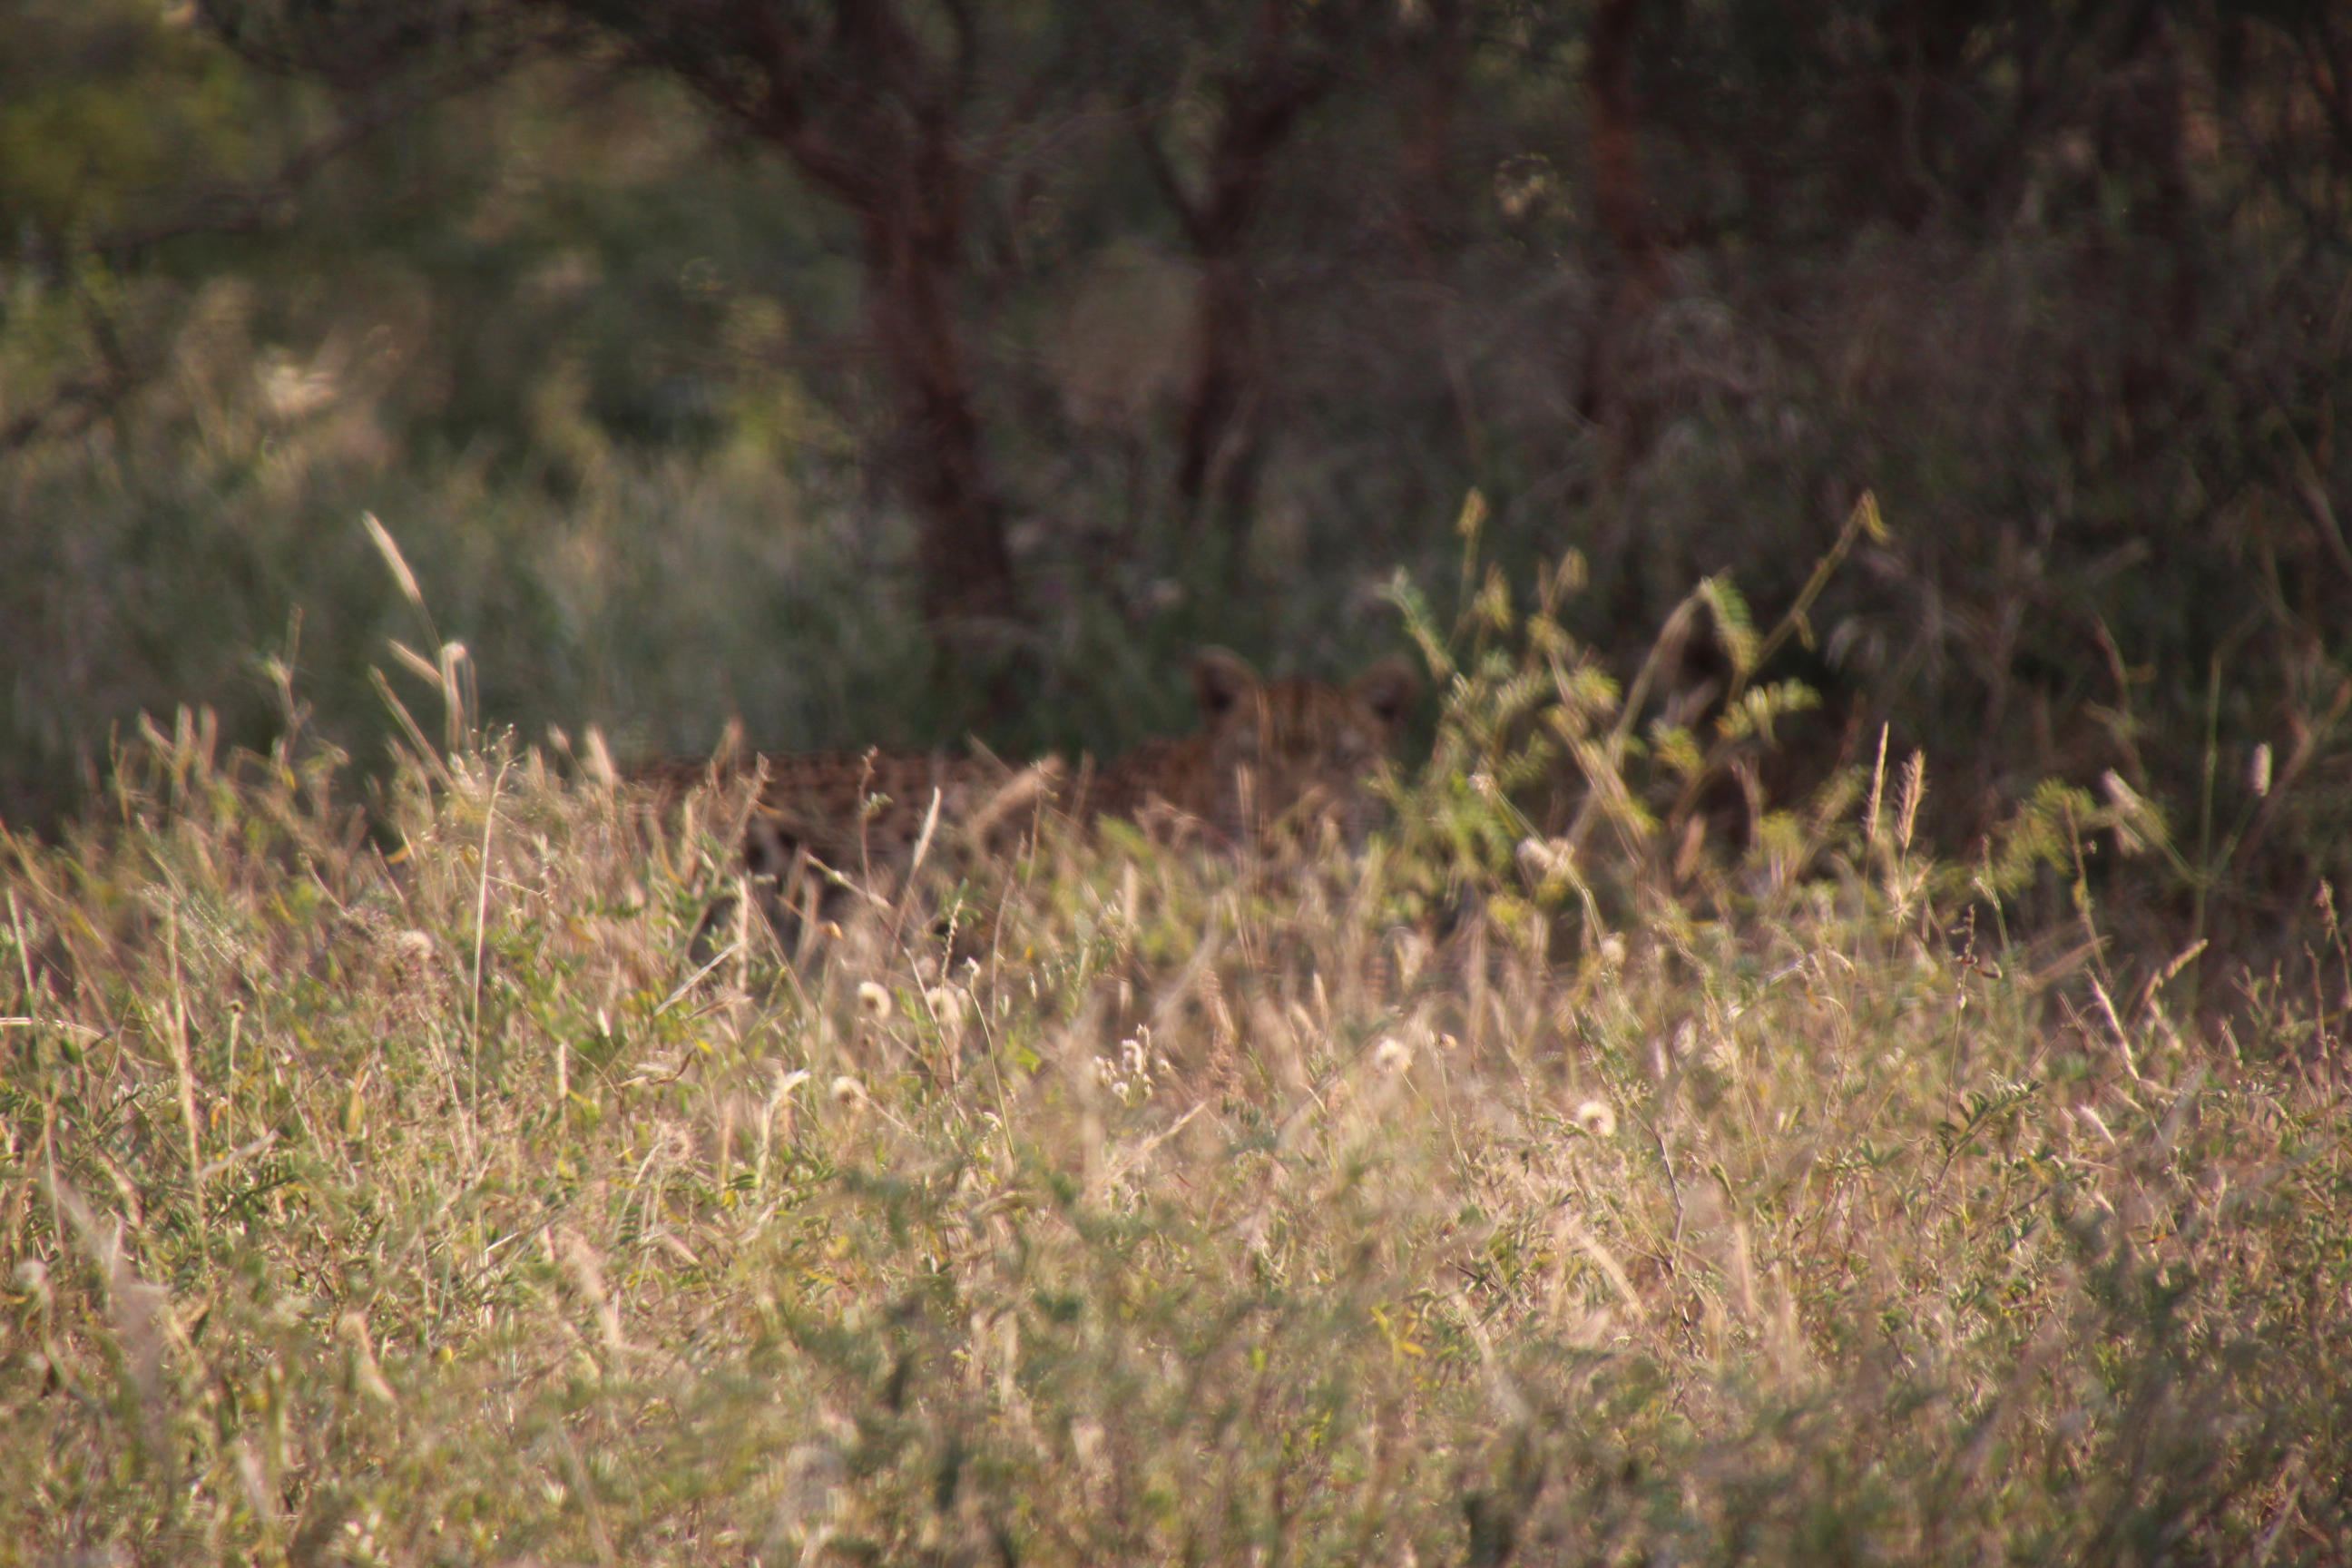 Young Leopard in grass daylight Sprear April.JPG